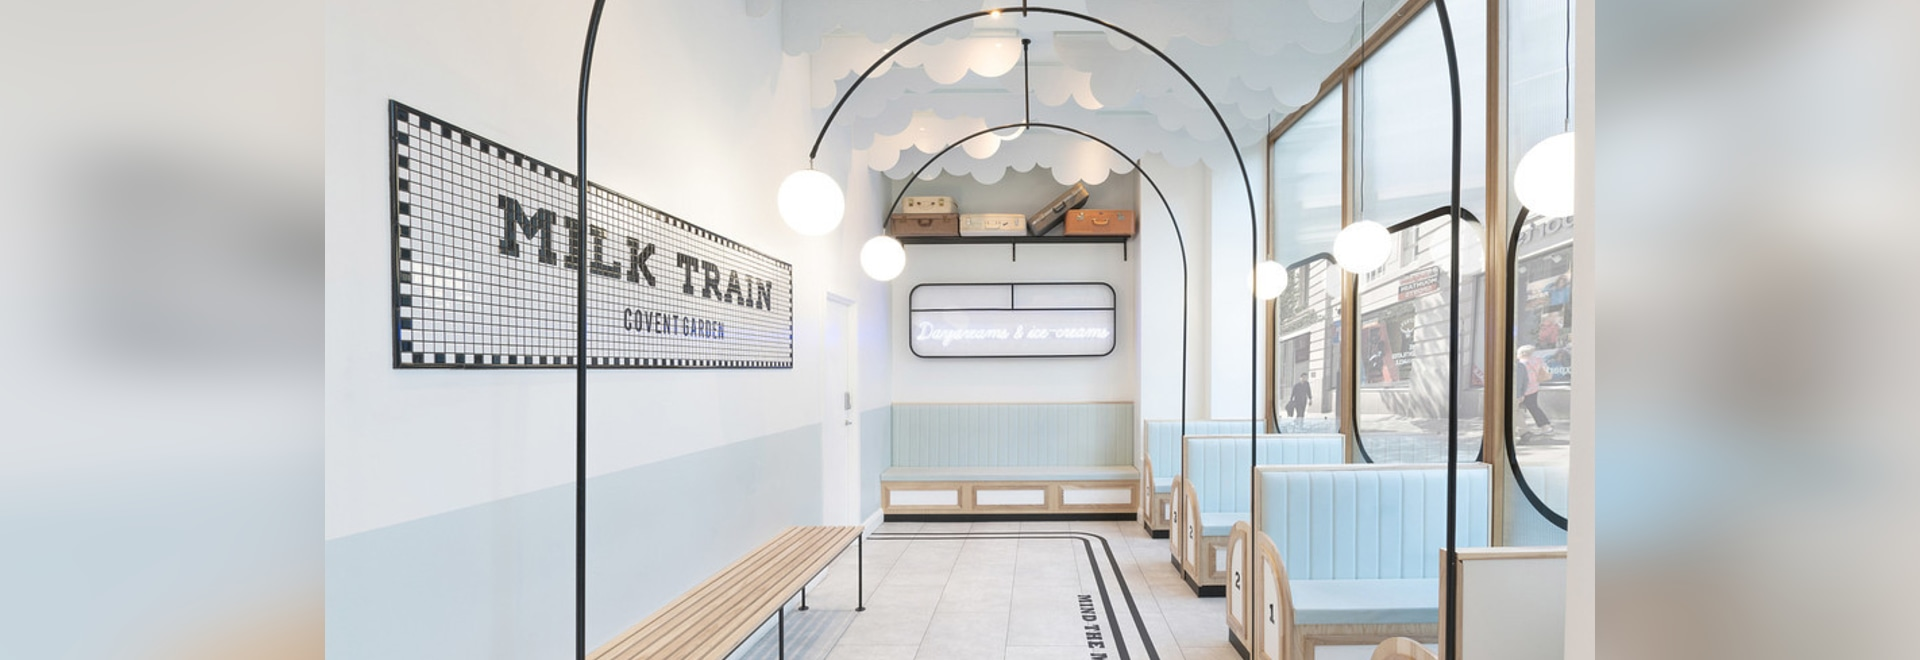 The Milk Train Ice Cream Cafe Was Inspired By British Trains And Their Stations